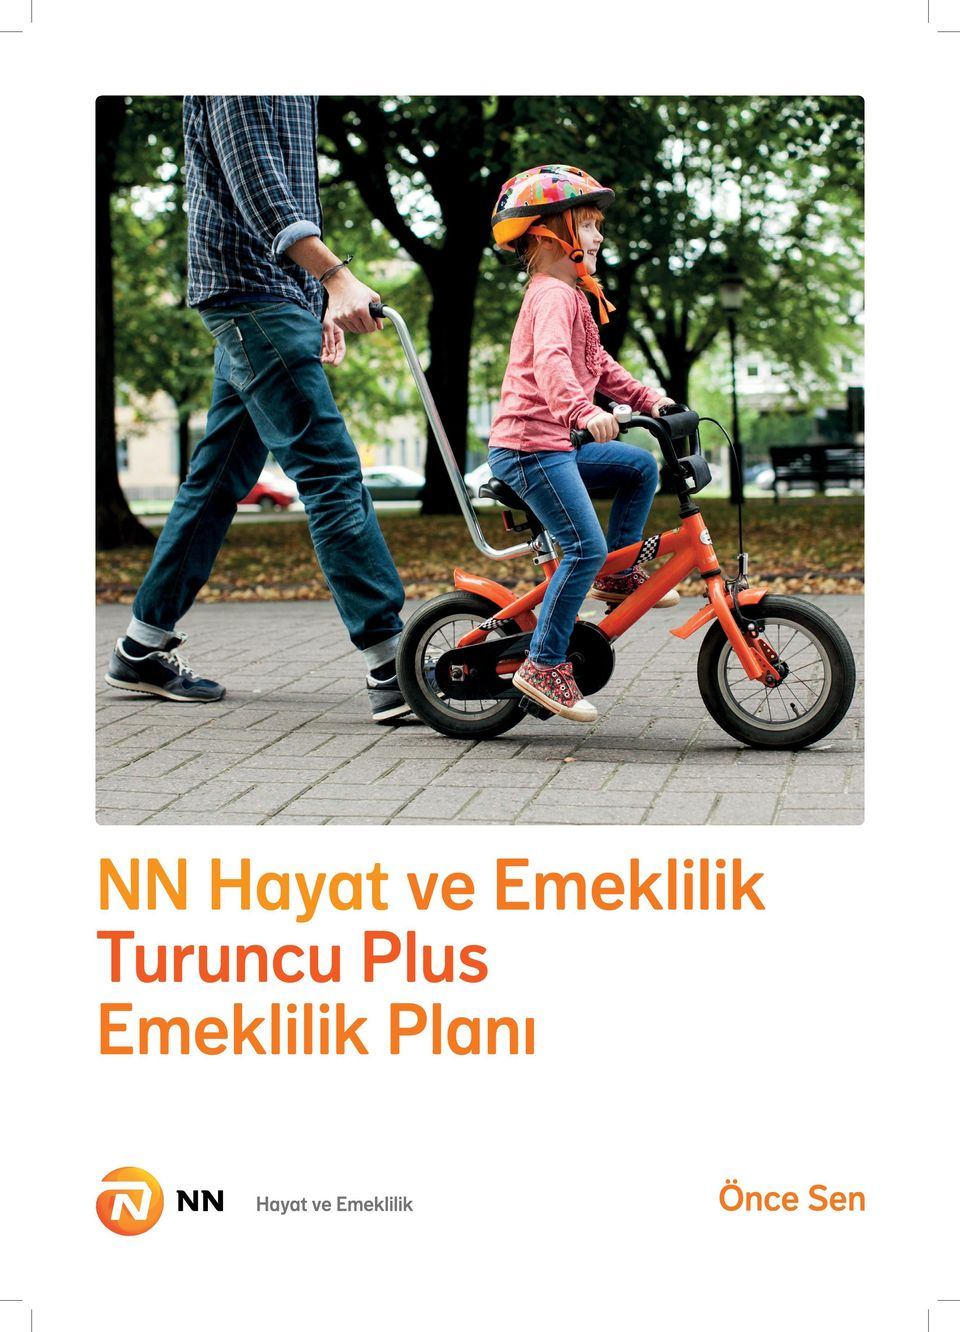 Turuncu Plus